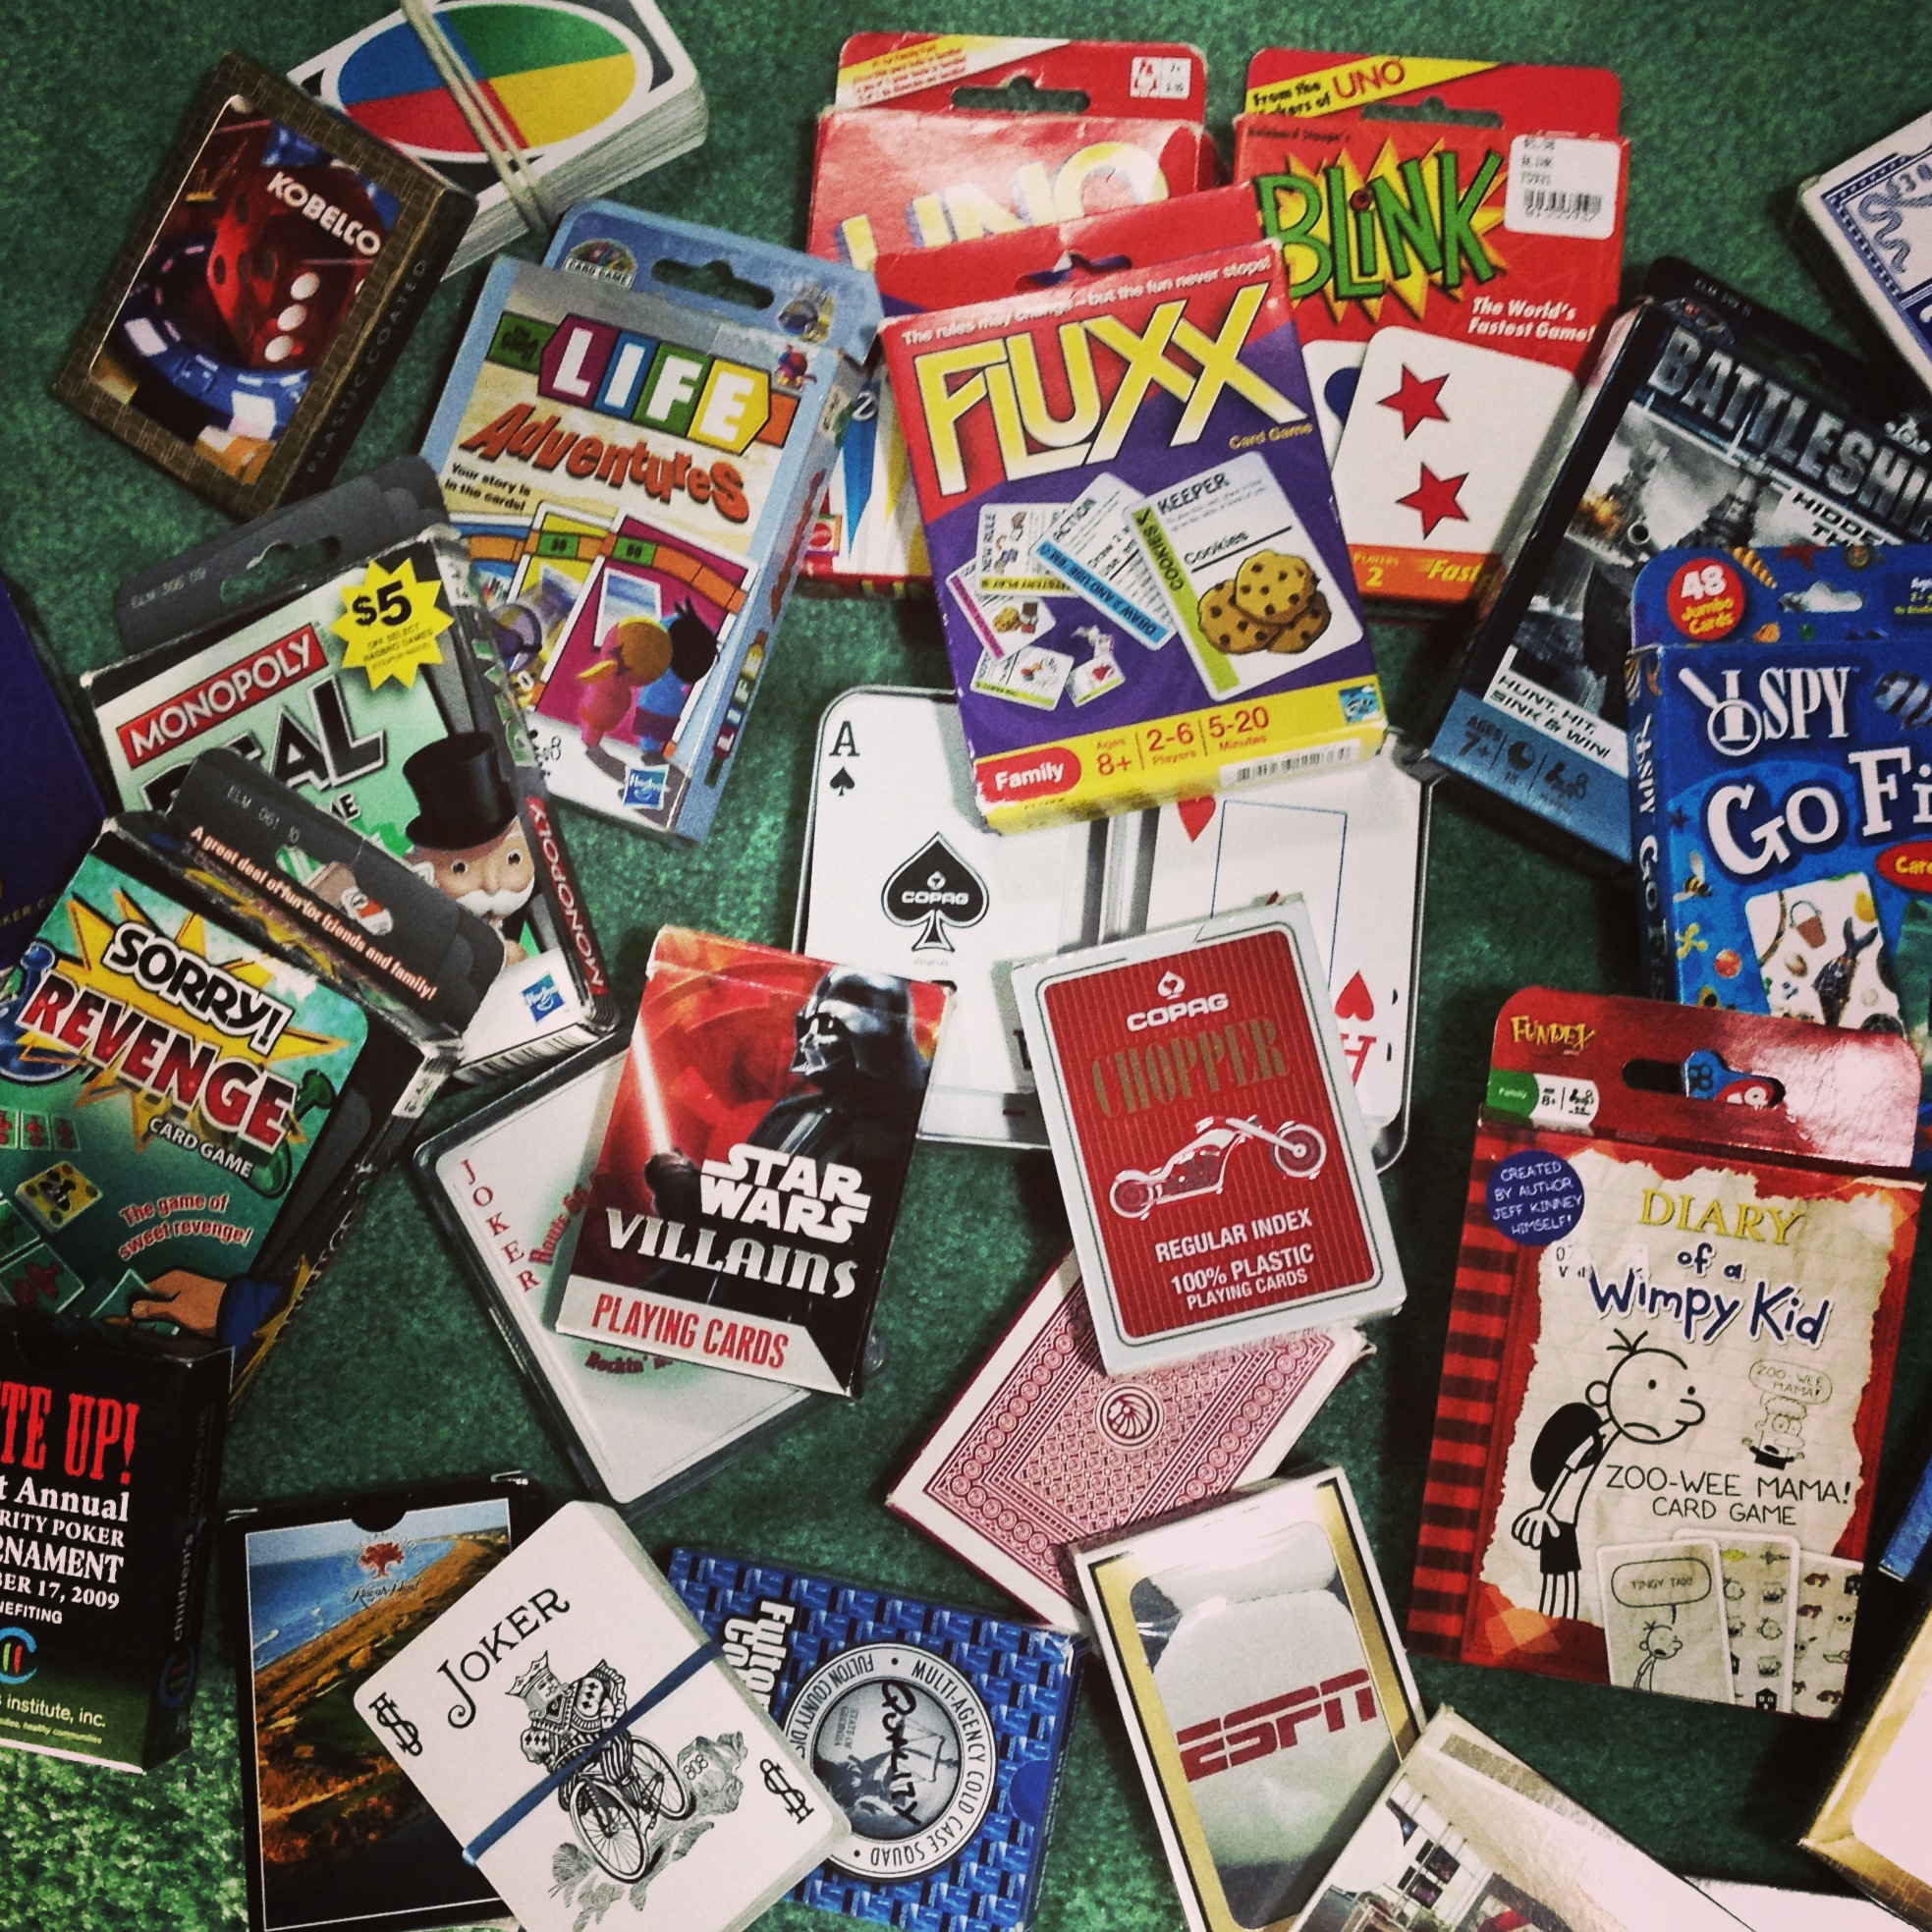 Lots of Card Games